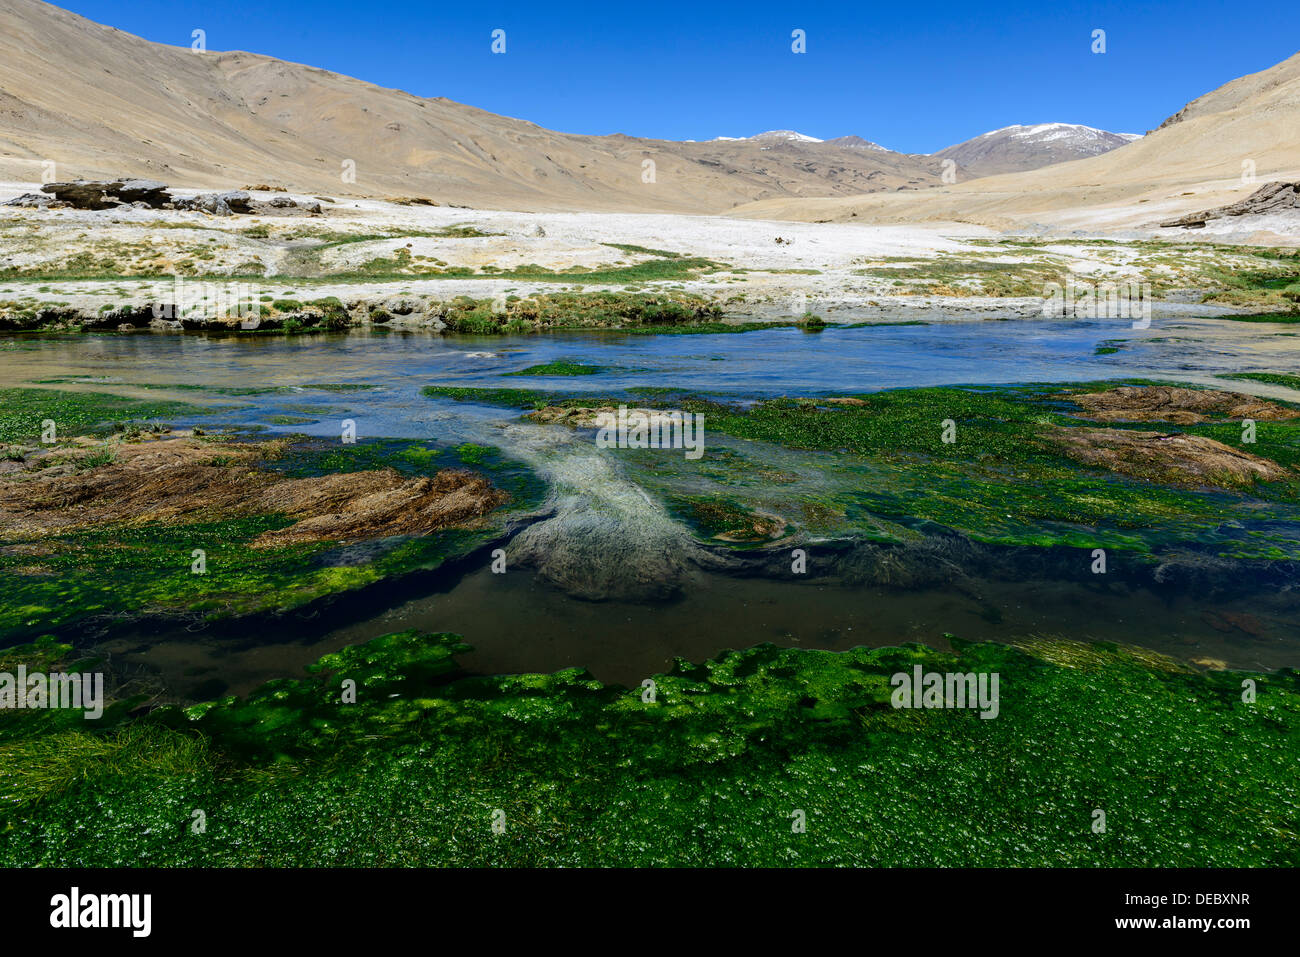 Hot springs, Korzok, Ladakh, Jammu and Kashmir, India Stock Photo